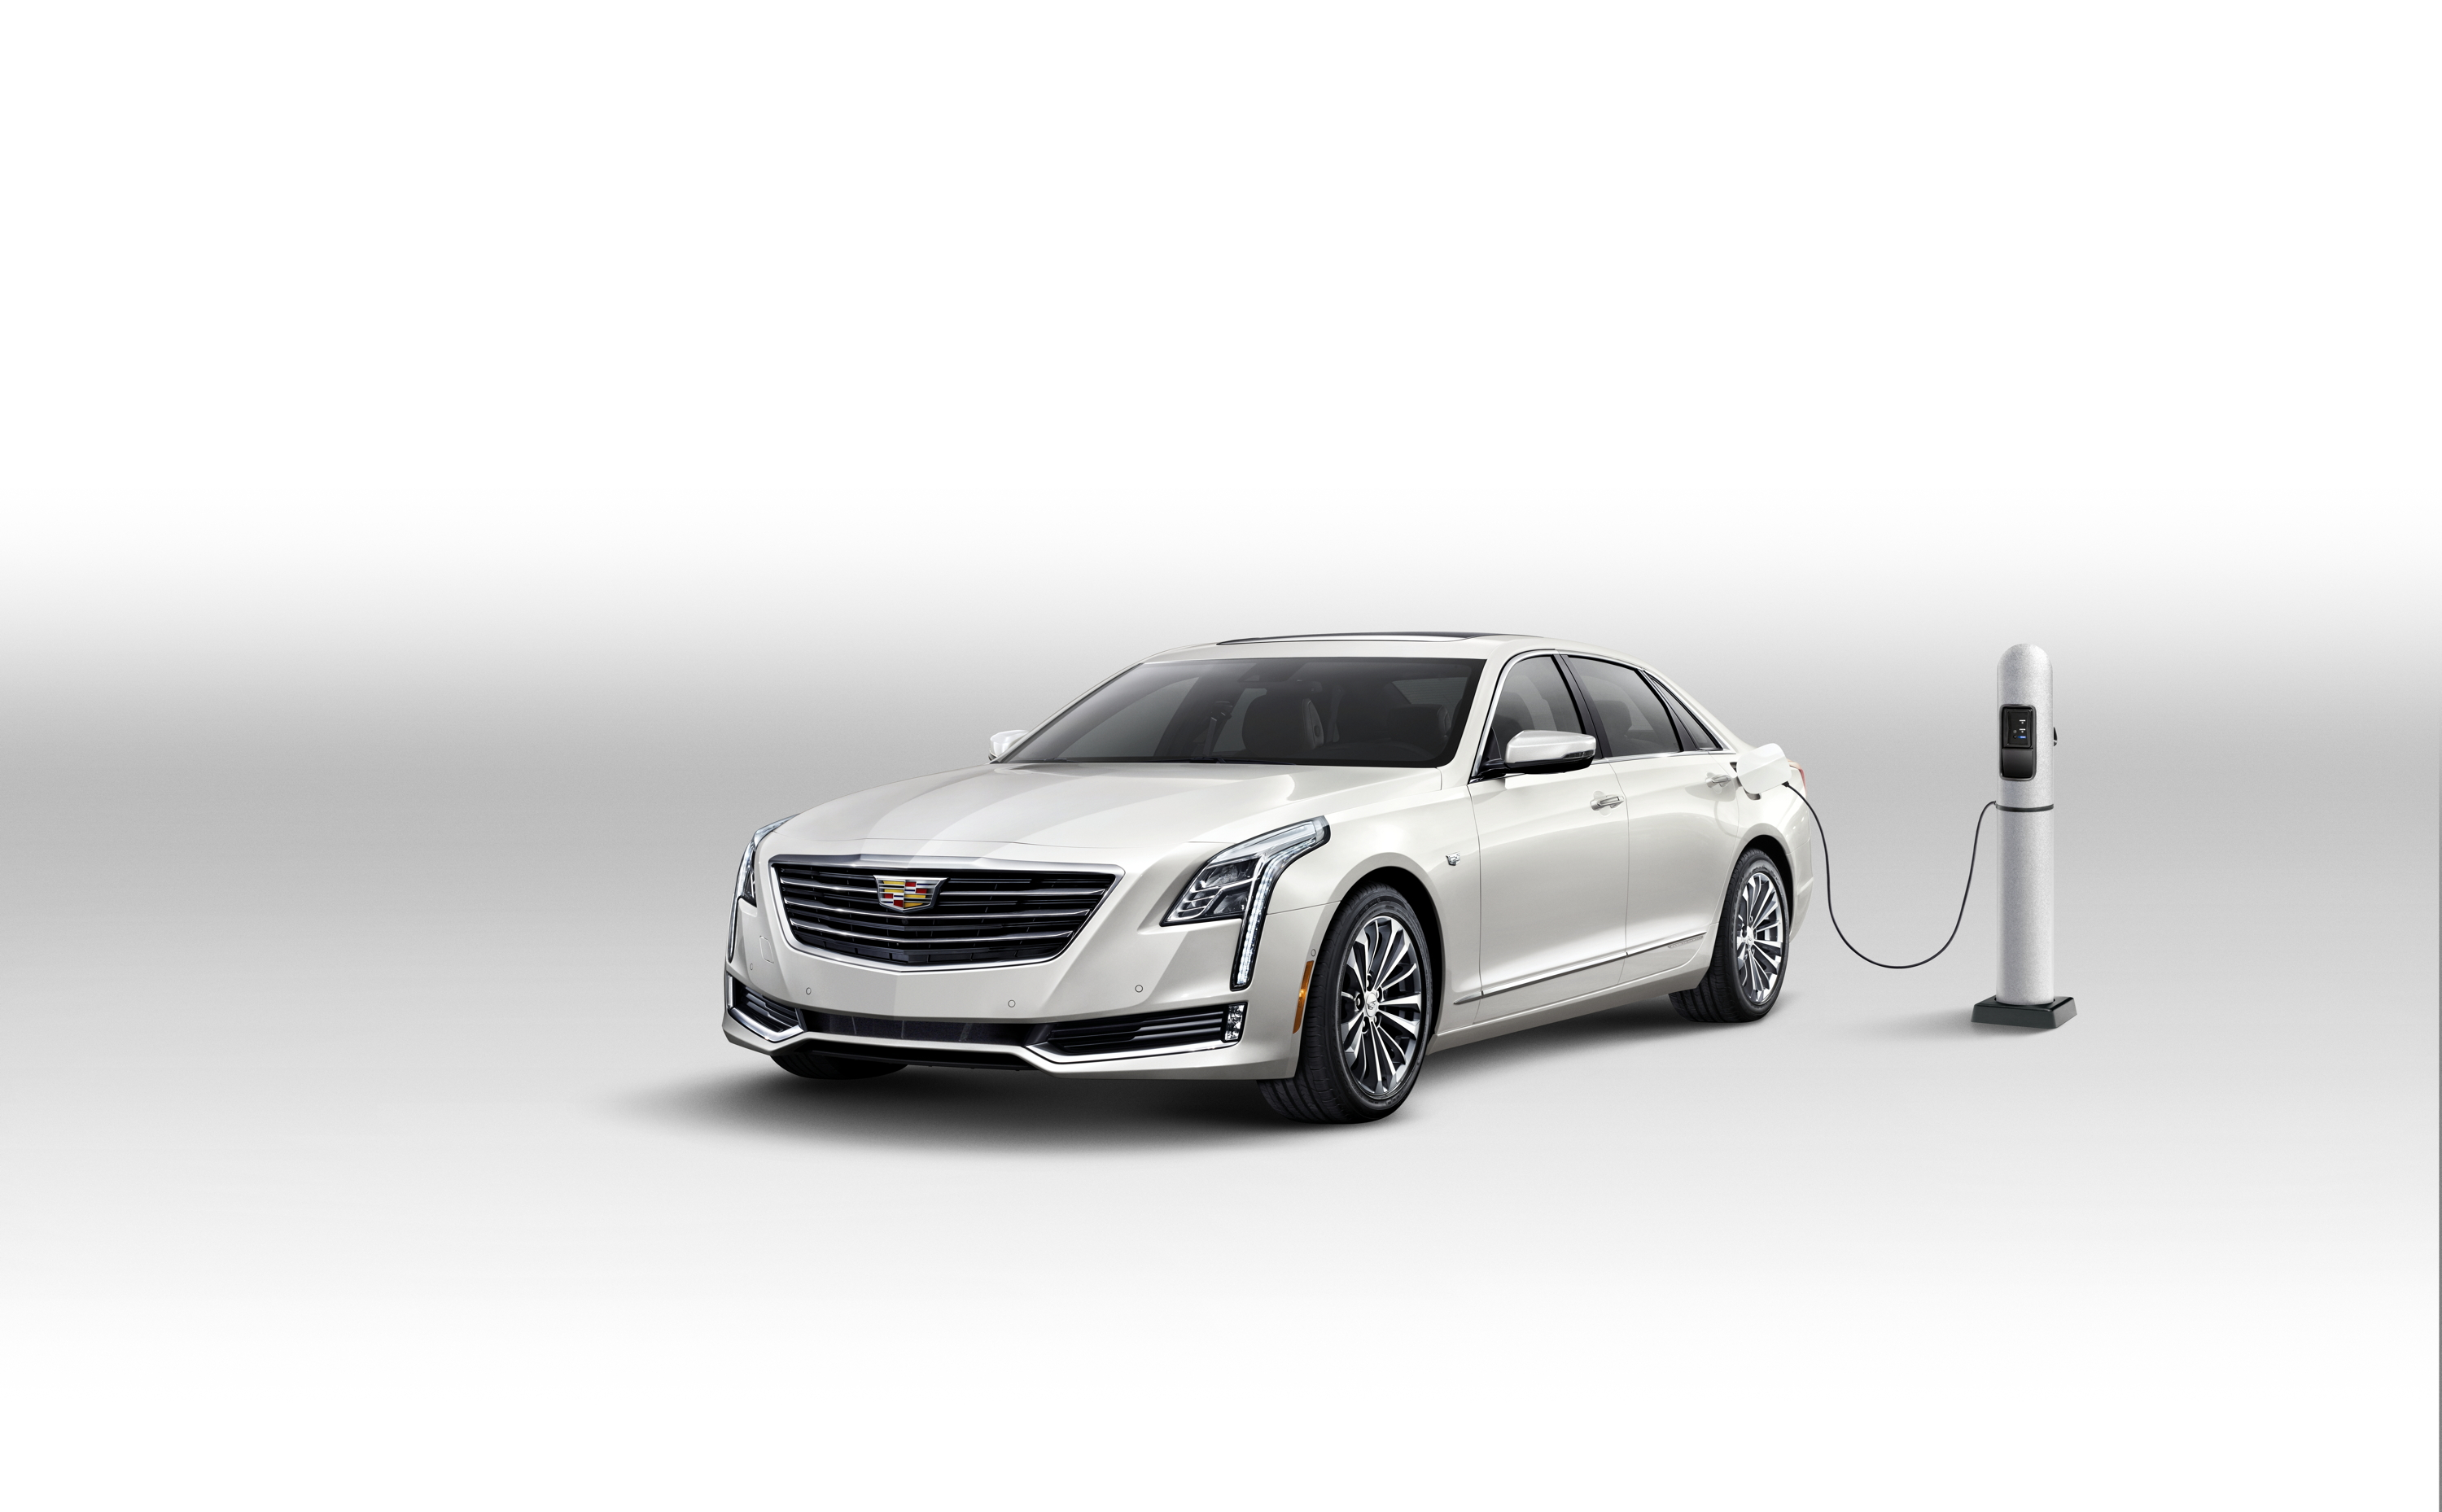 2017 Cadillac Ct6 Plug In On Sale In Spring 2017 Offering An